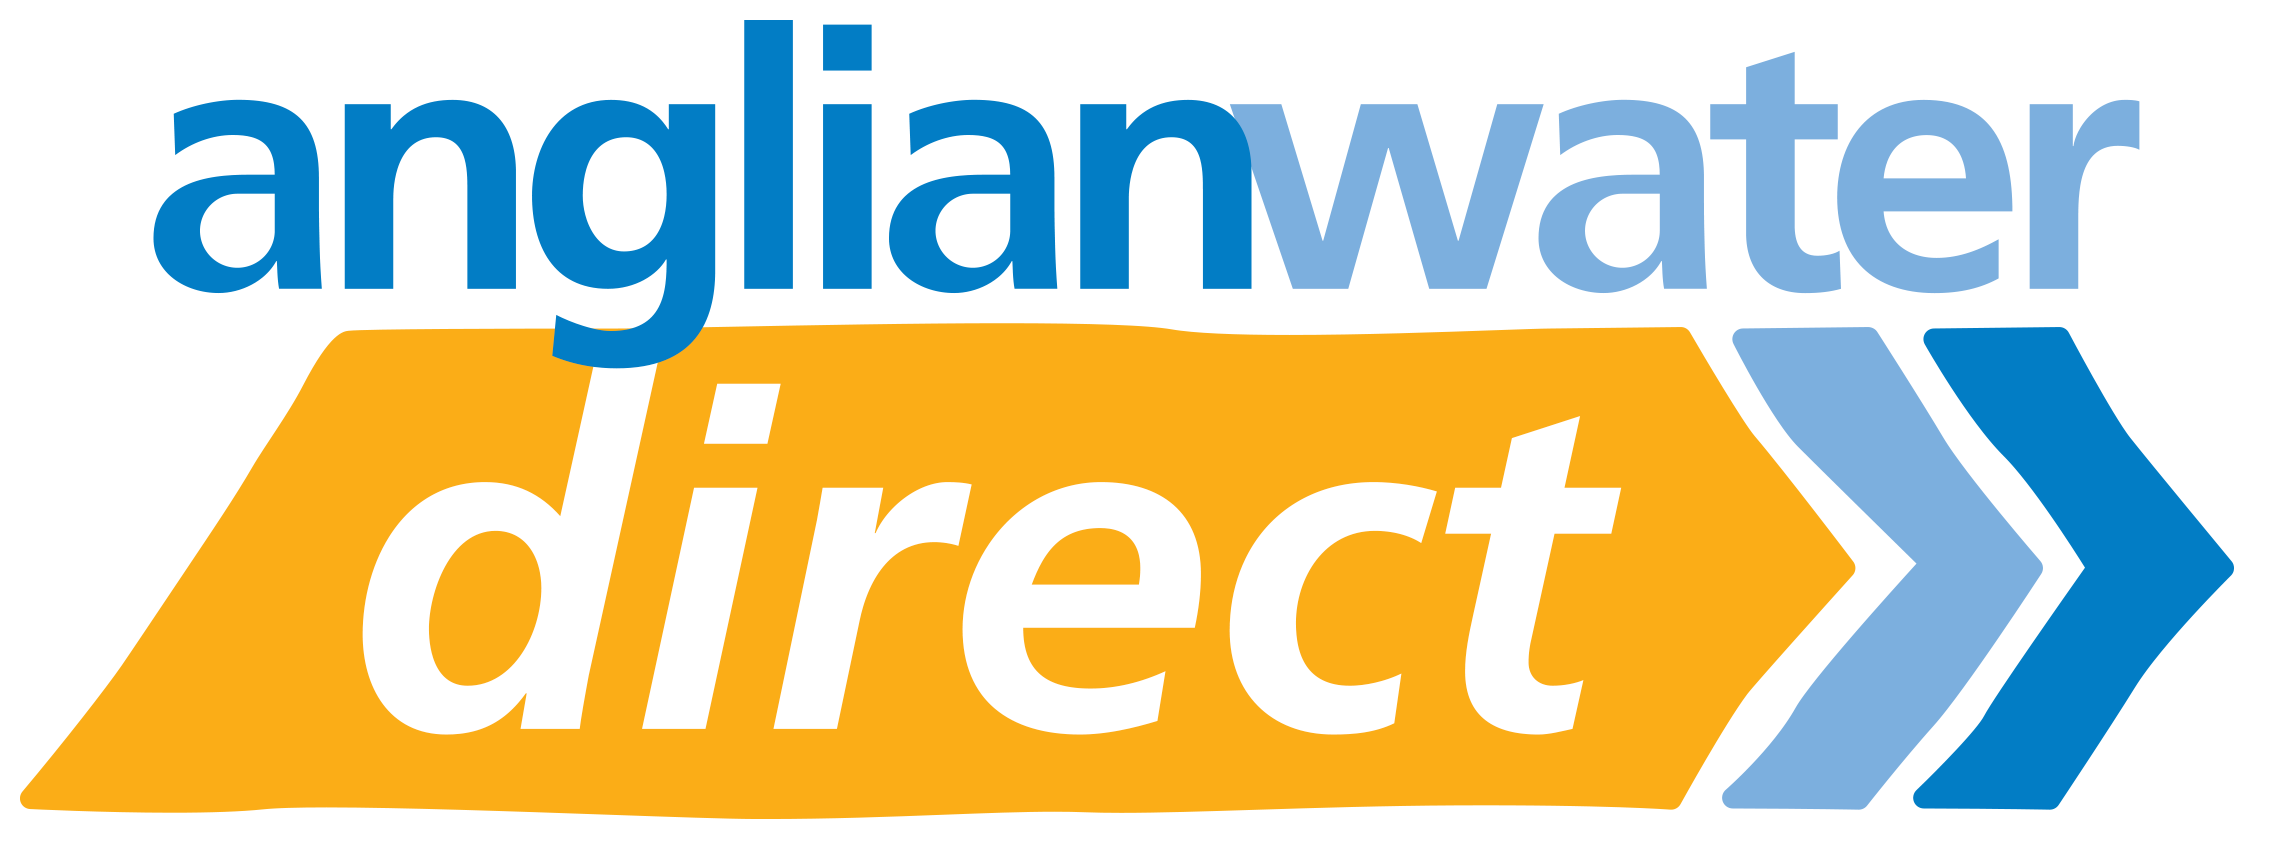 Anglian Water Direct Logo